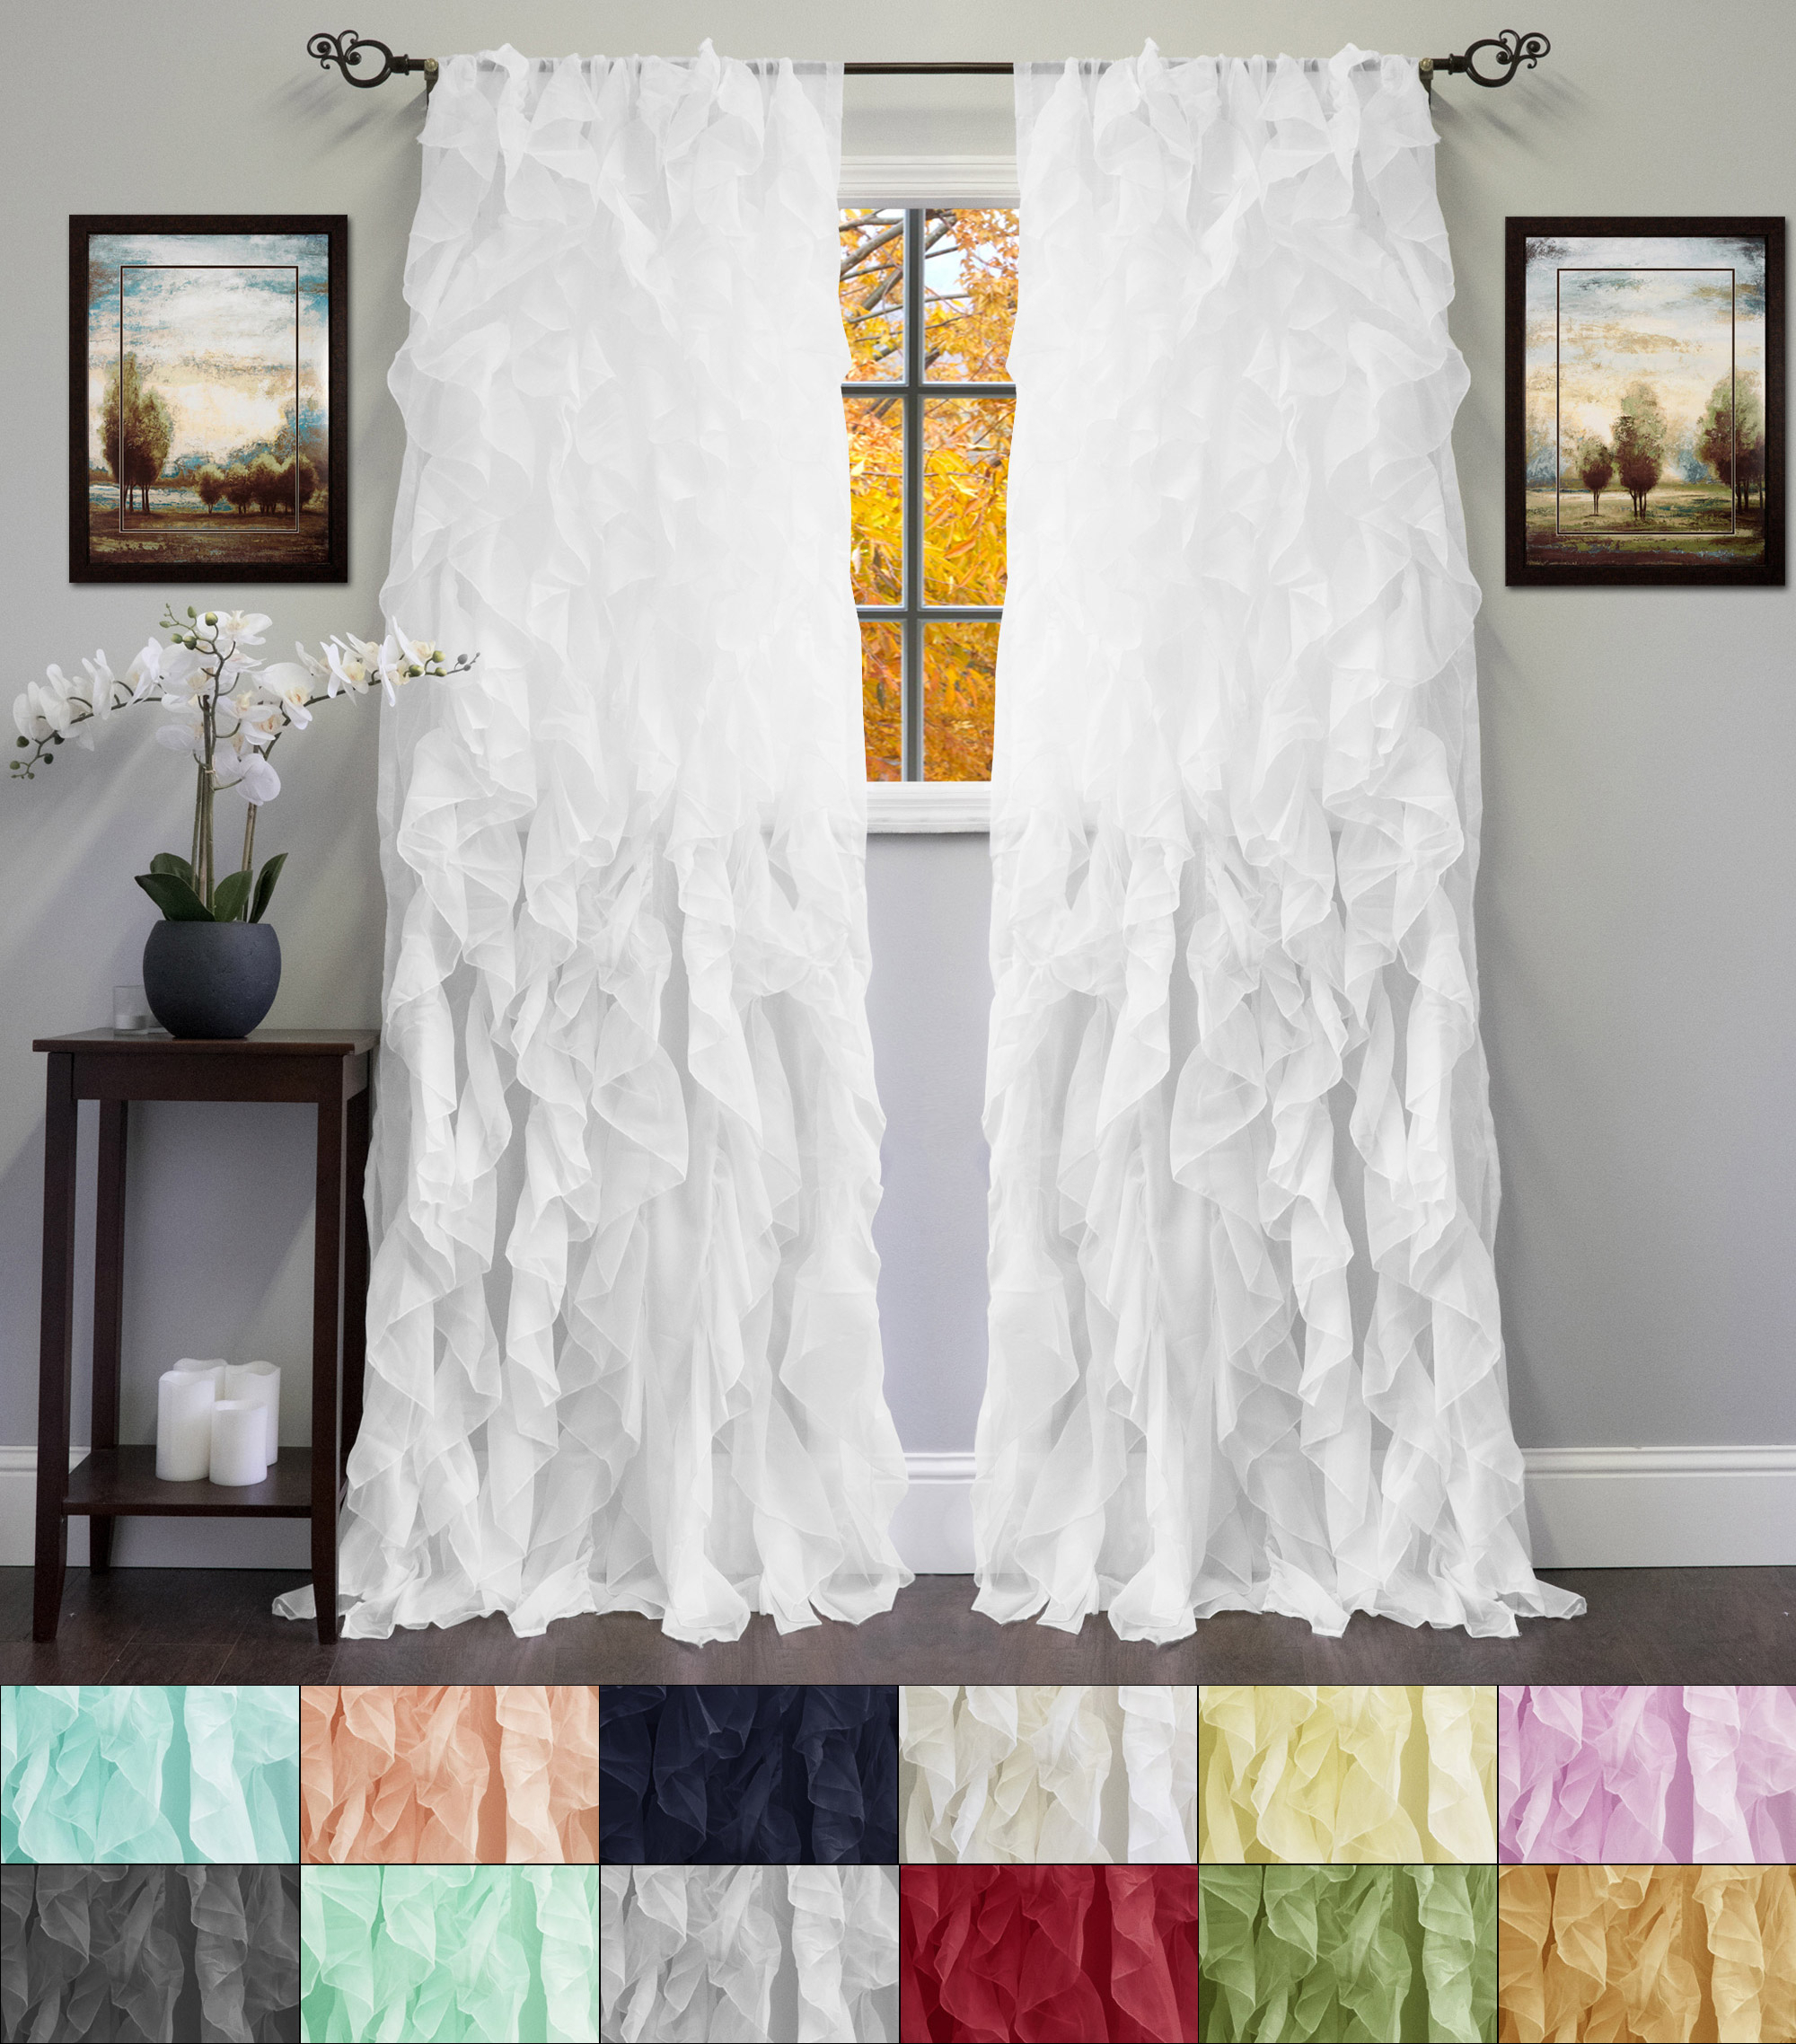 "Details About Chic Sheer Voile Vertical Ruffled Tier Window Curtain Single Panel 50"" X 84"" In Sheer Voile Waterfall Ruffled Tier Single Curtain Panels (View 2 of 20)"